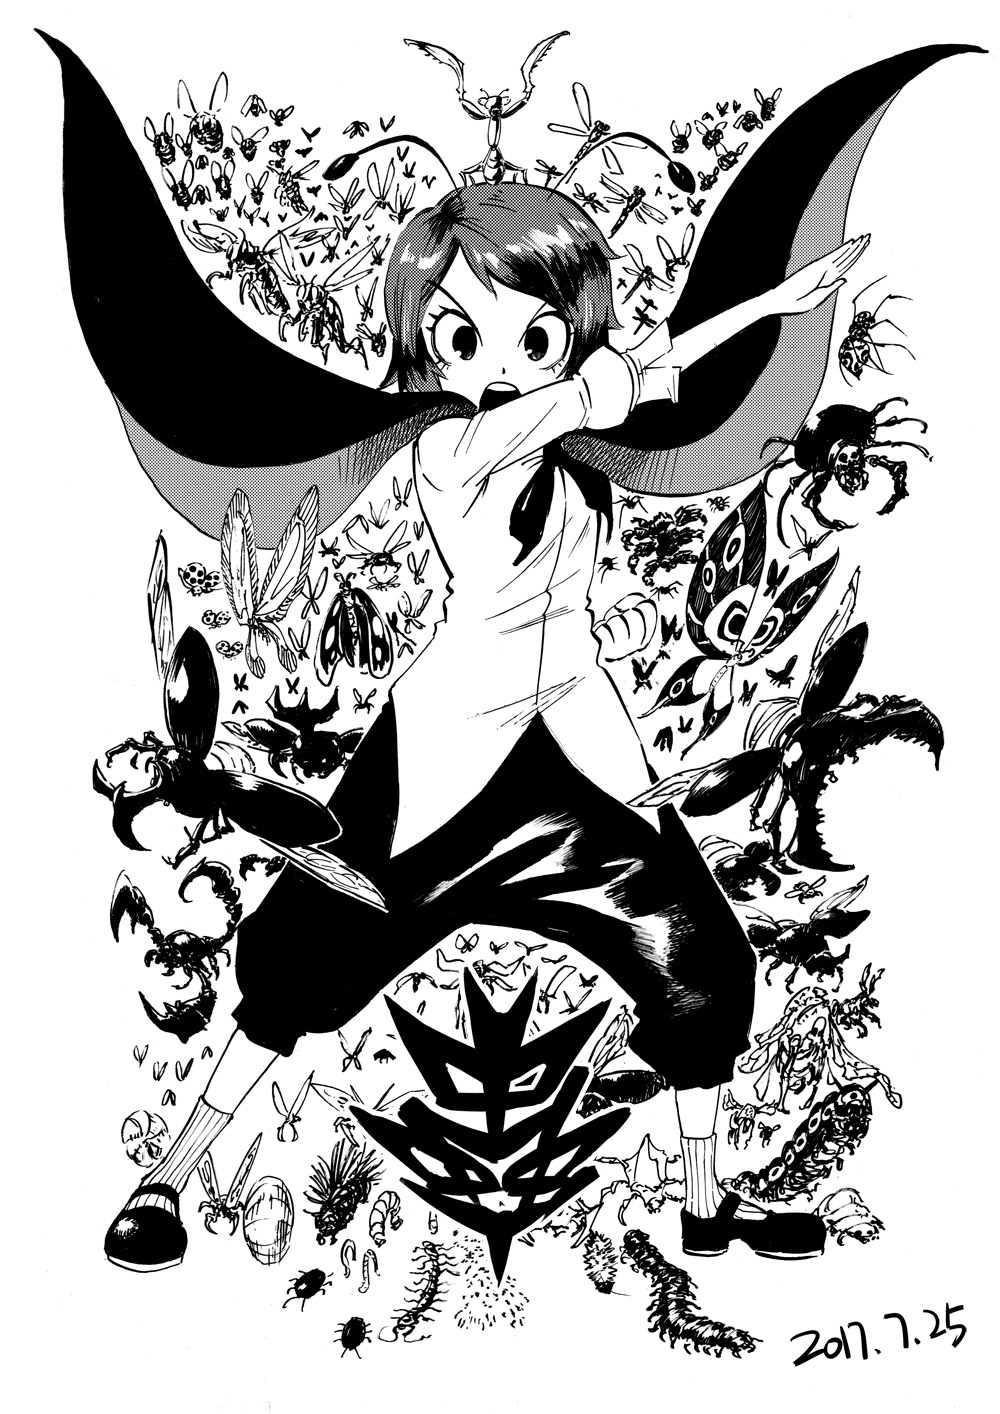 1girl angry antennae bee black_footwear blackcat_(pixiv) bug butterfly cape centipede clenched_hand dated dragonfly dress_shirt eyebrows_visible_through_hair fly greyscale highres insect ladybug looking_at_viewer mary_janes millipede monochrome mosquito open_mouth pose praying_mantis scorpion serious shirt shoes short_hair short_sleeves shorts socks spider touhou v-shaped_eyebrows white_background worms wriggle_nightbug